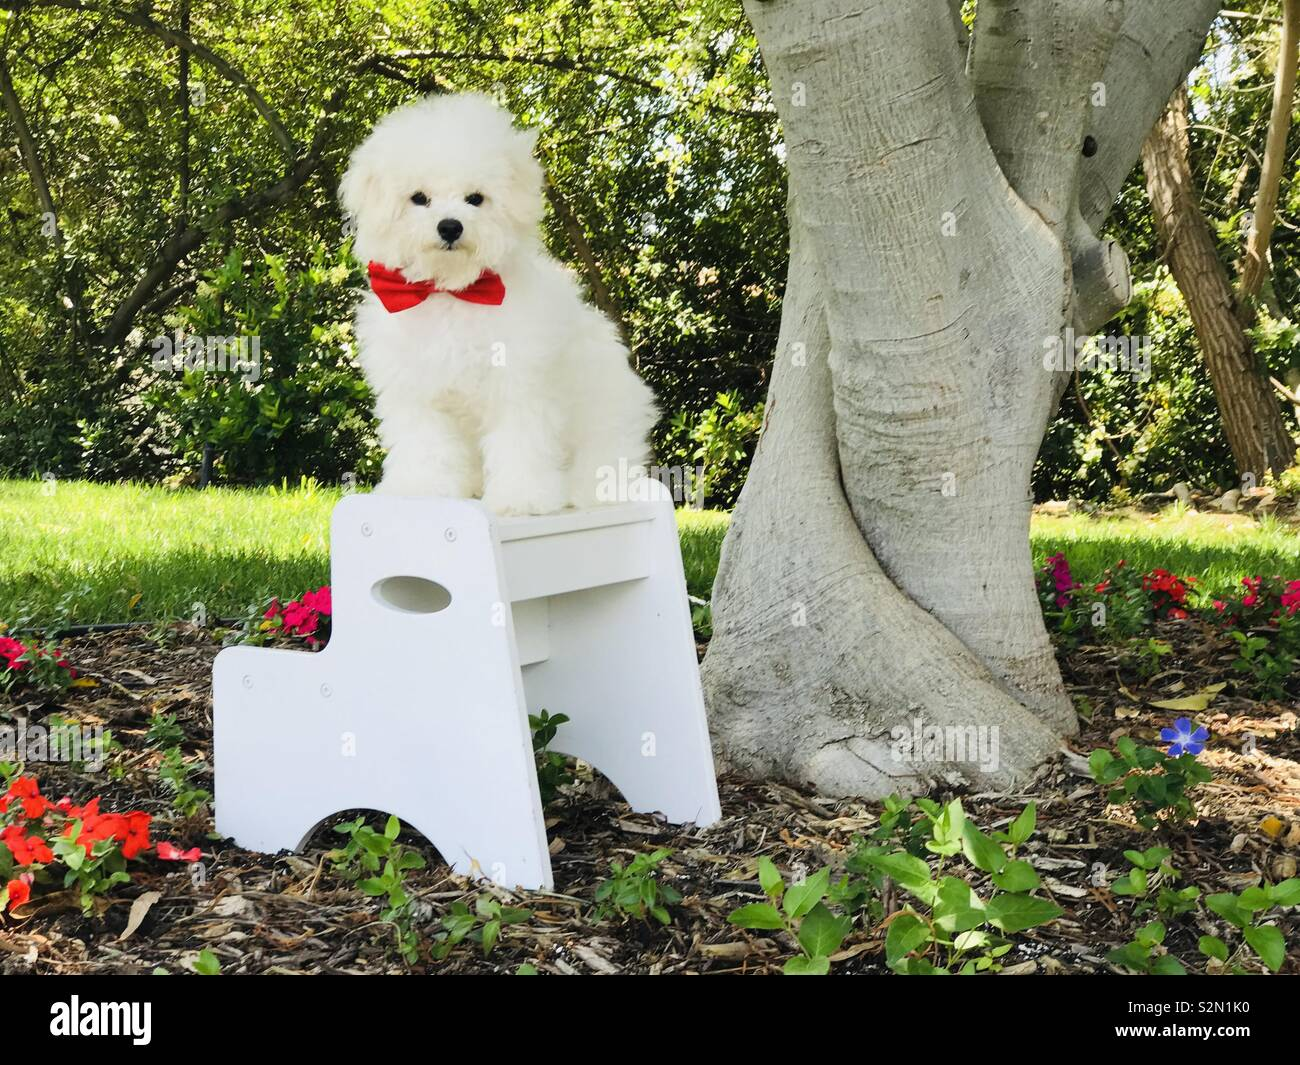 Sitting beneath a tree in a garden, Teddy Pup, resplendent in white fur and red bow tie, poses among the flora. - Stock Image